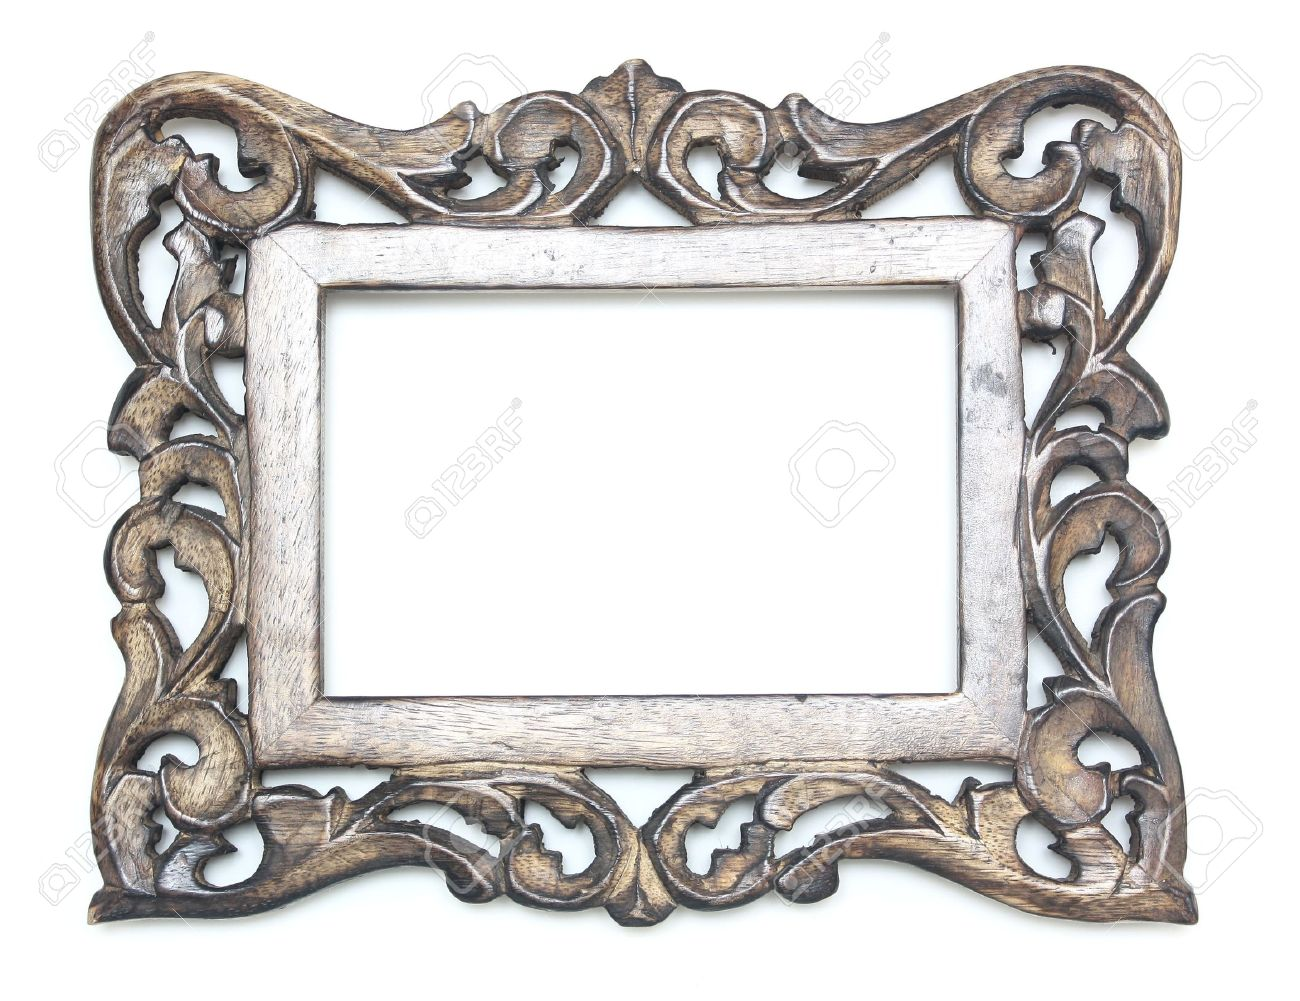 Rectange Wooden Picture Frame Stock Photo, Picture And Royalty Free ...